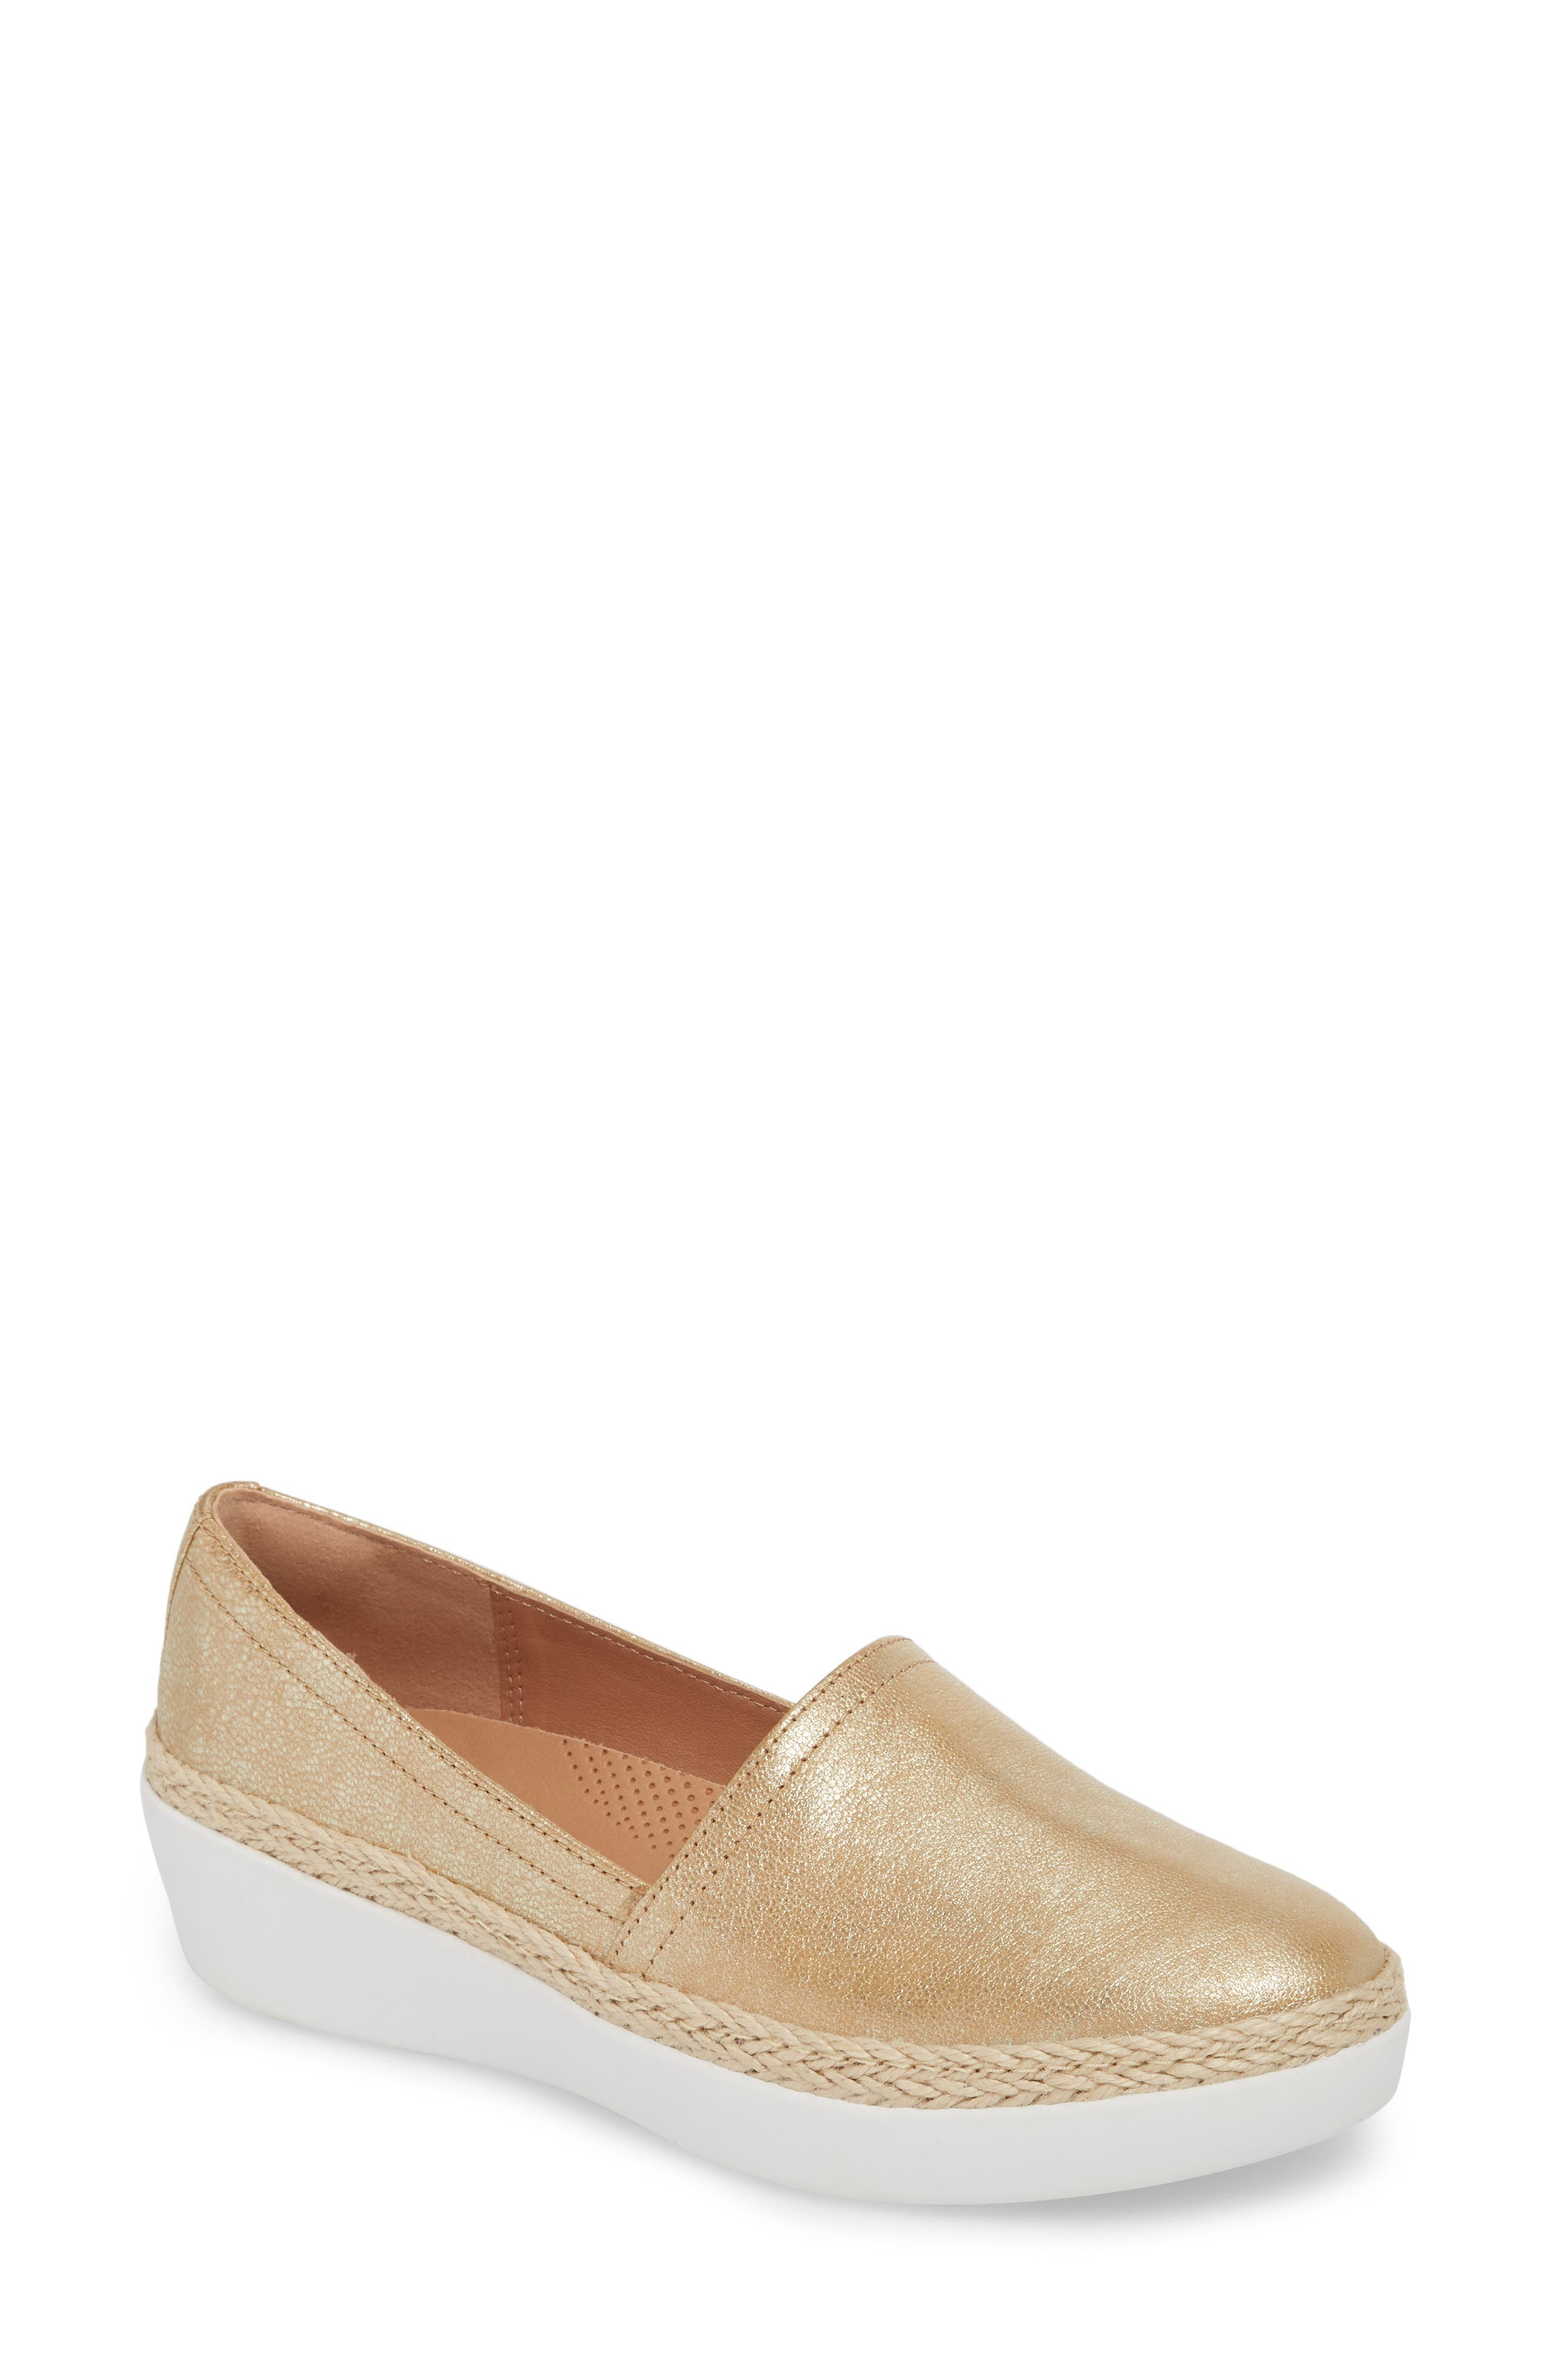 Fitflop Casa Loafer, Metallic